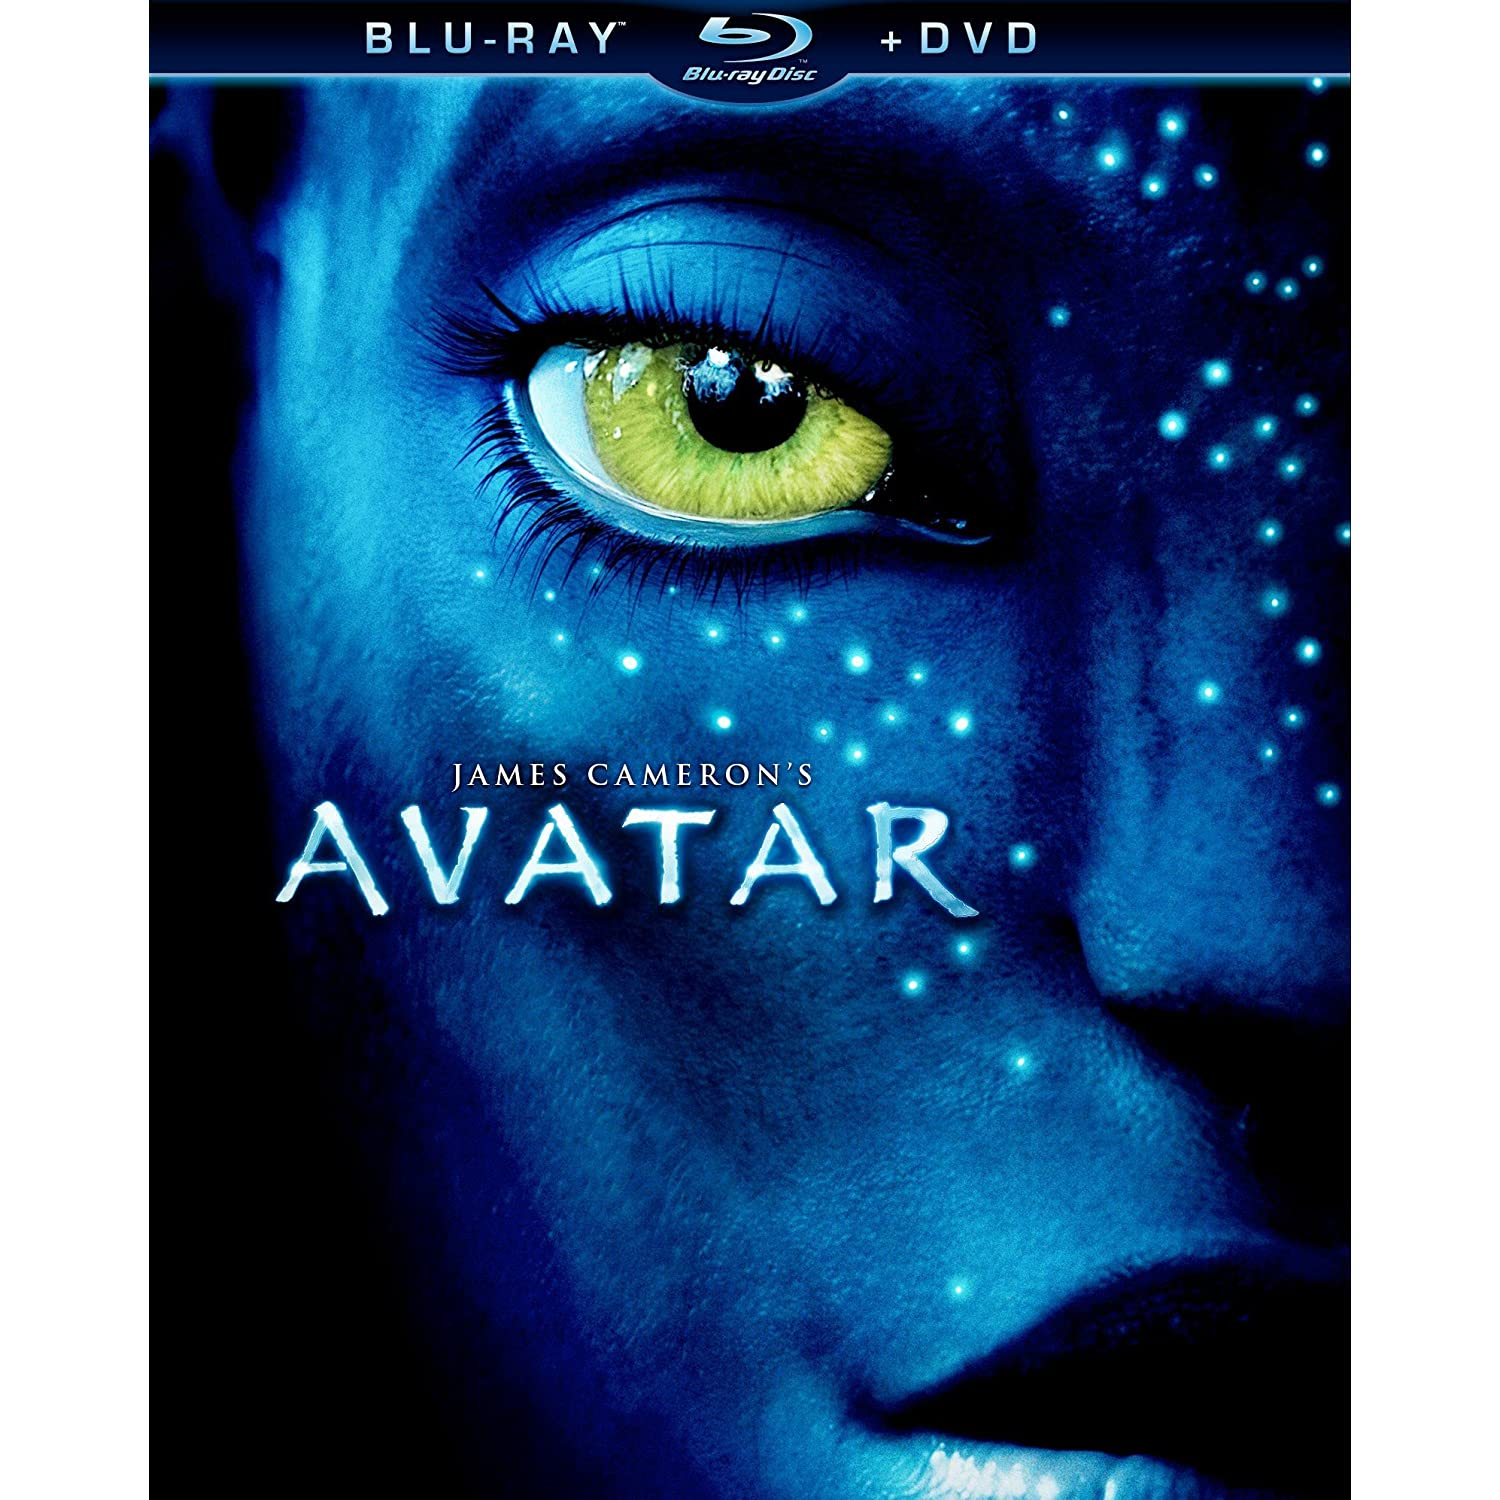 Avatar Dvd: Blu-ray Online Store: Avatar (Two-Disc Original Theatrical